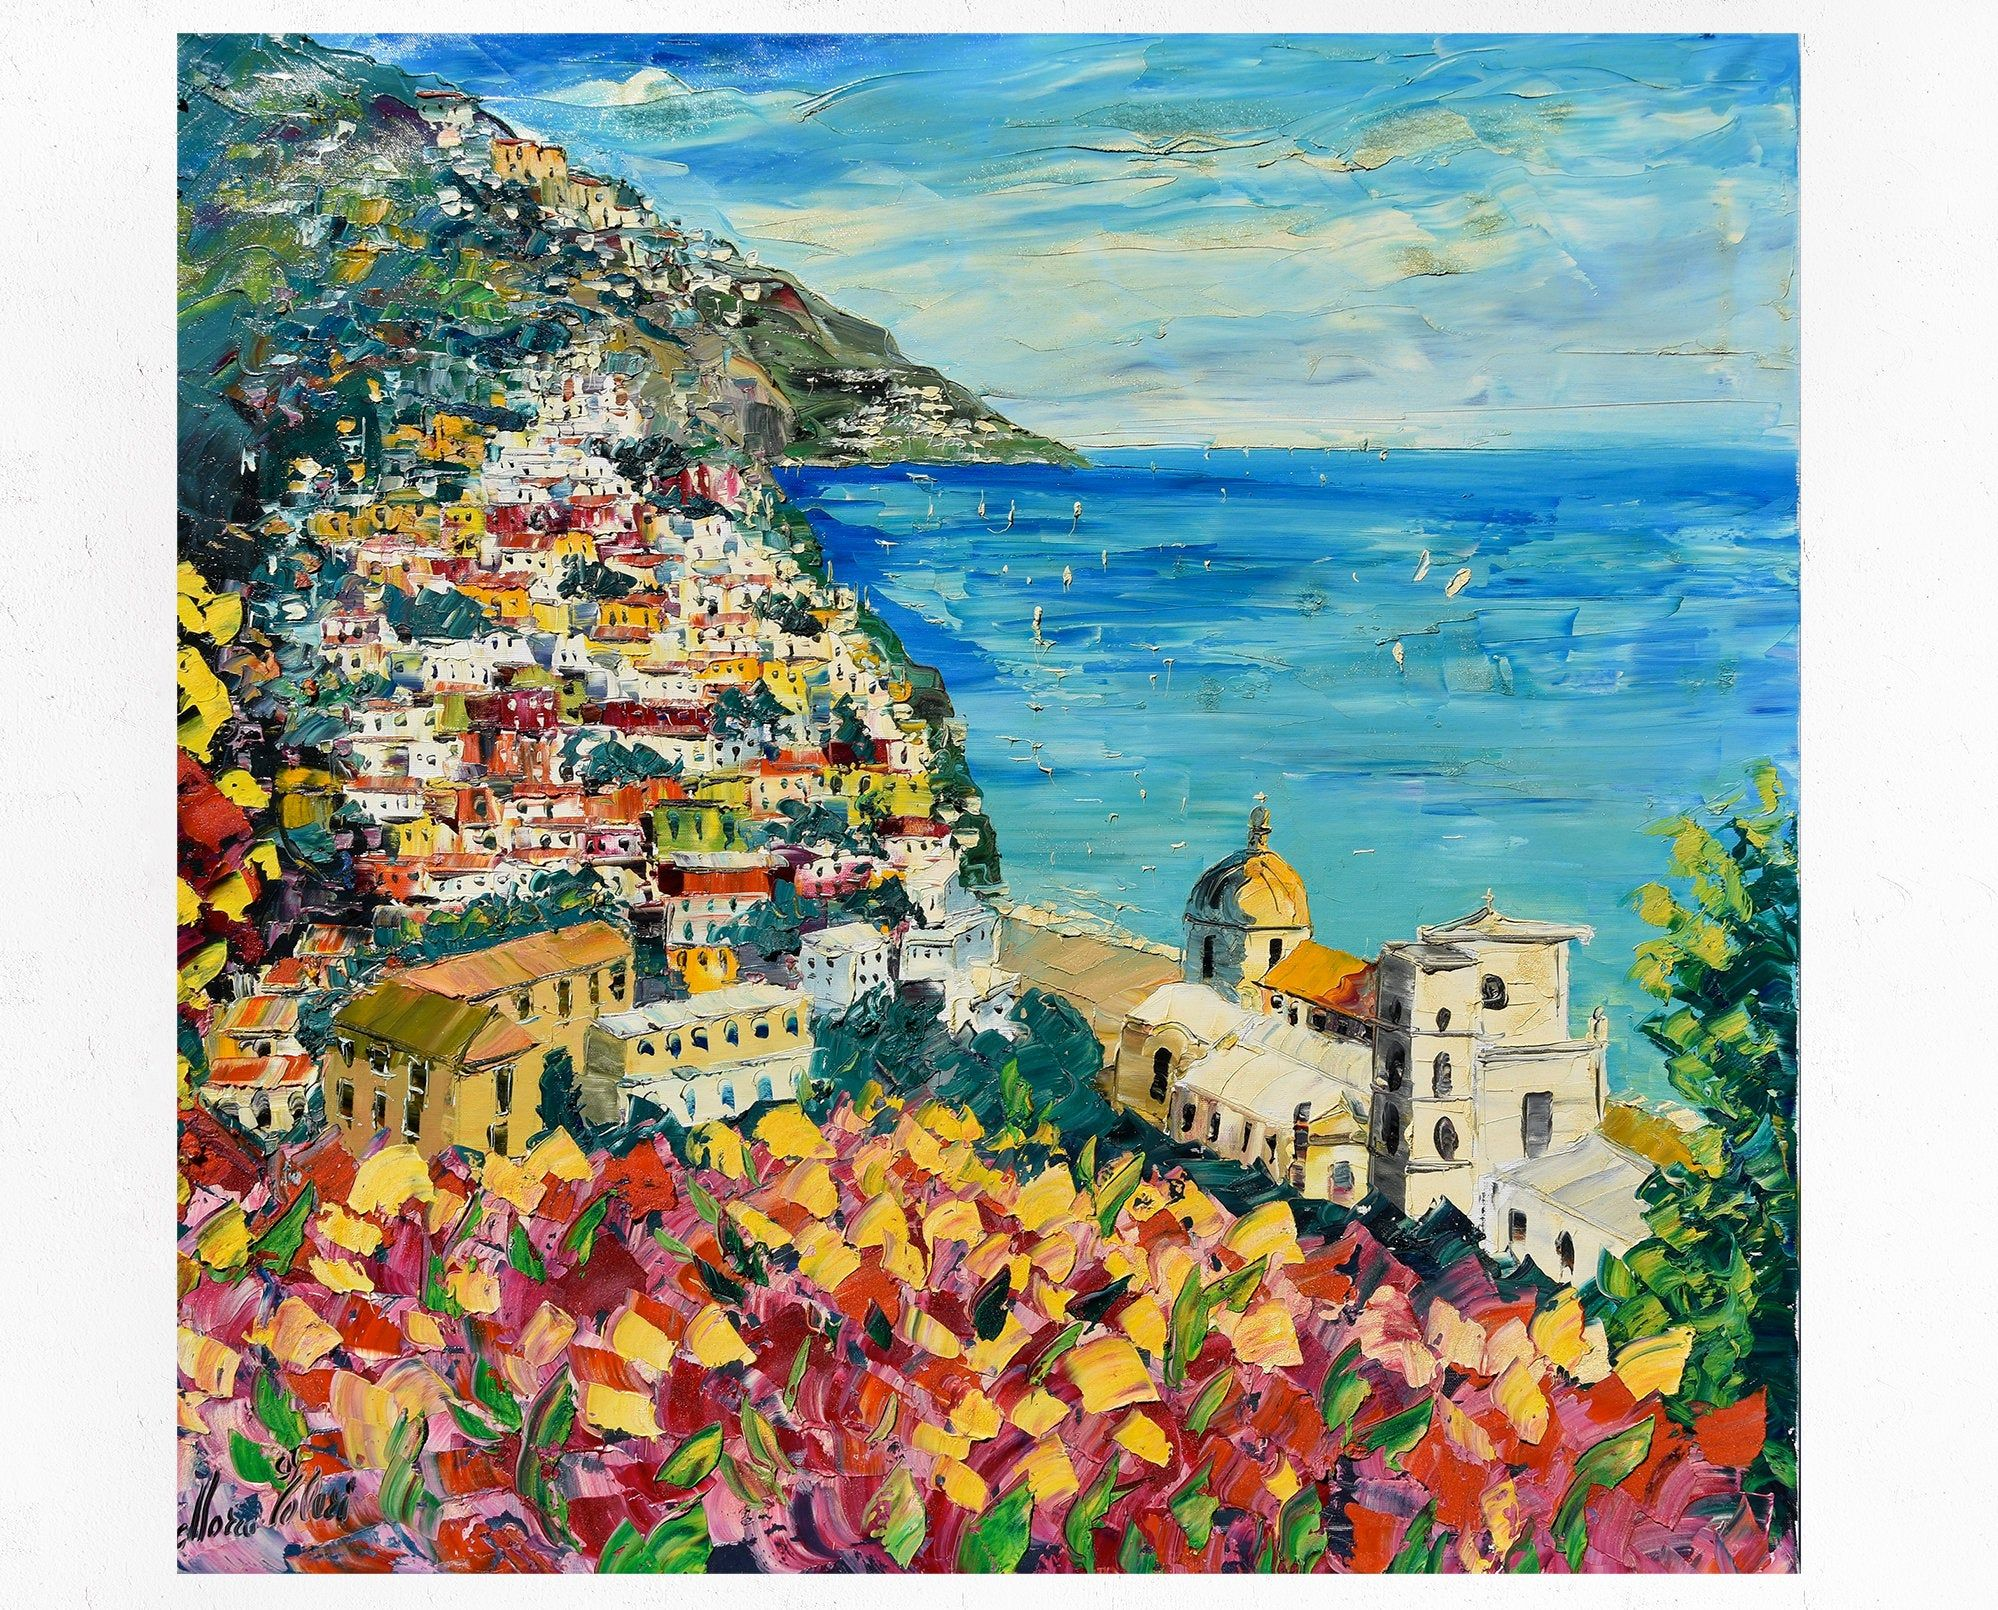 Positano Painting On Canvas Amalfi Coast Wall Art Decor Gift Idea Oil On Canvas Palette Knife Spatula 100x100cm 39 X39 Canvas Painting Painting Art